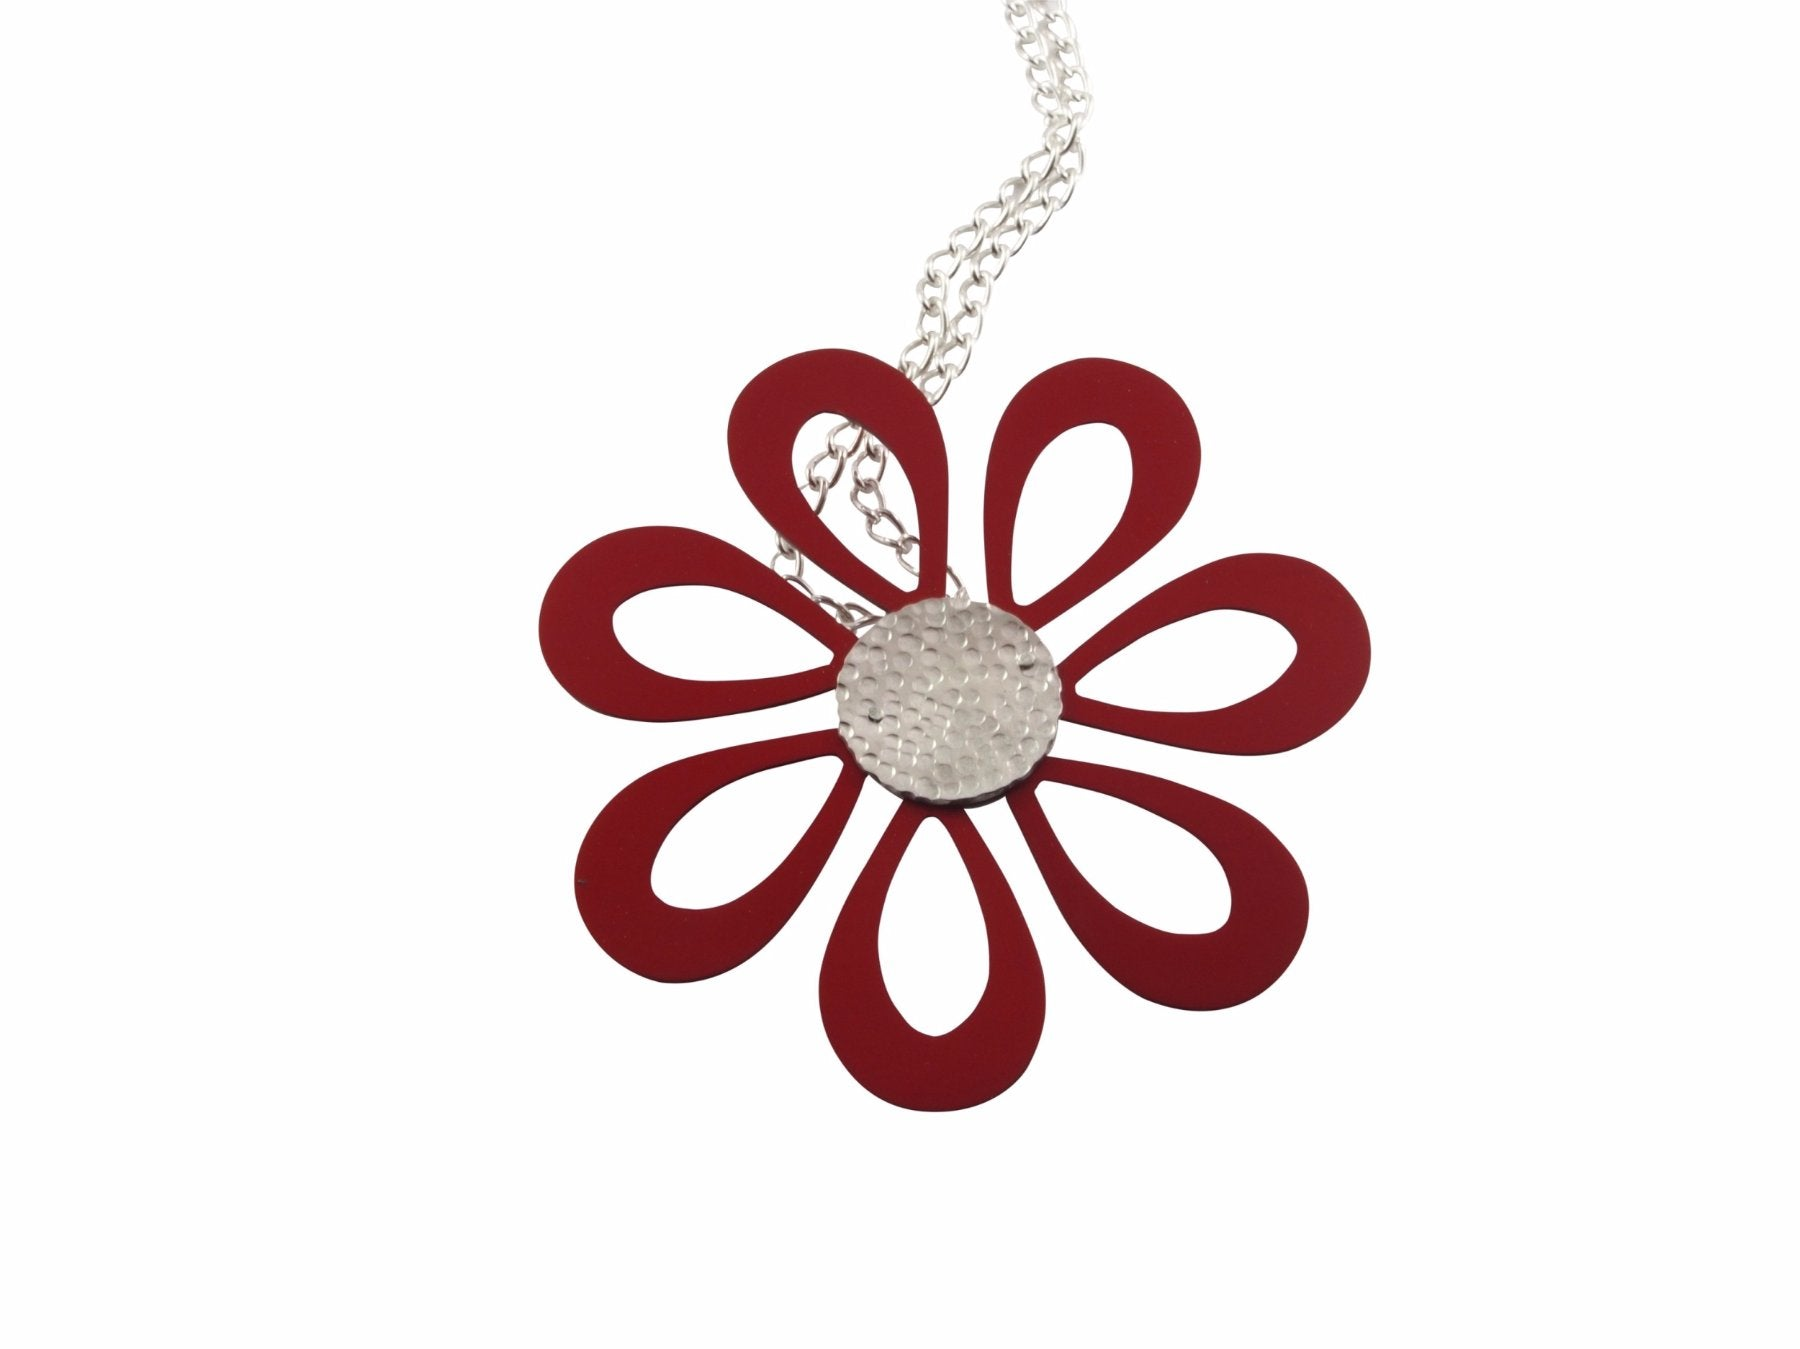 Flower power necklace is made from anodised aluminium and sterling silver. Chain lengths vary depending upon your preferences.